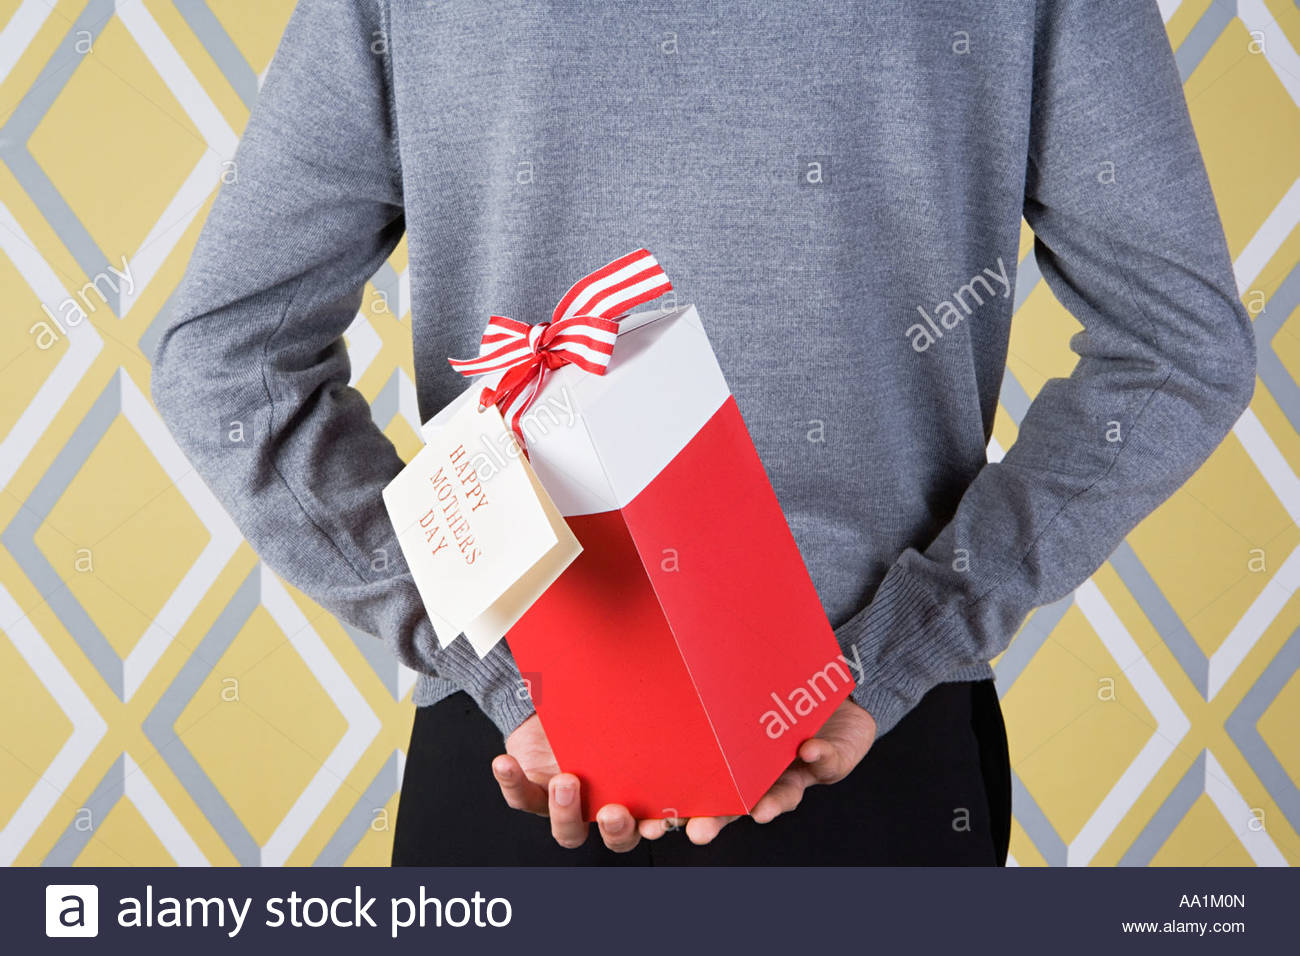 Man holding mothers day gift - Stock Image